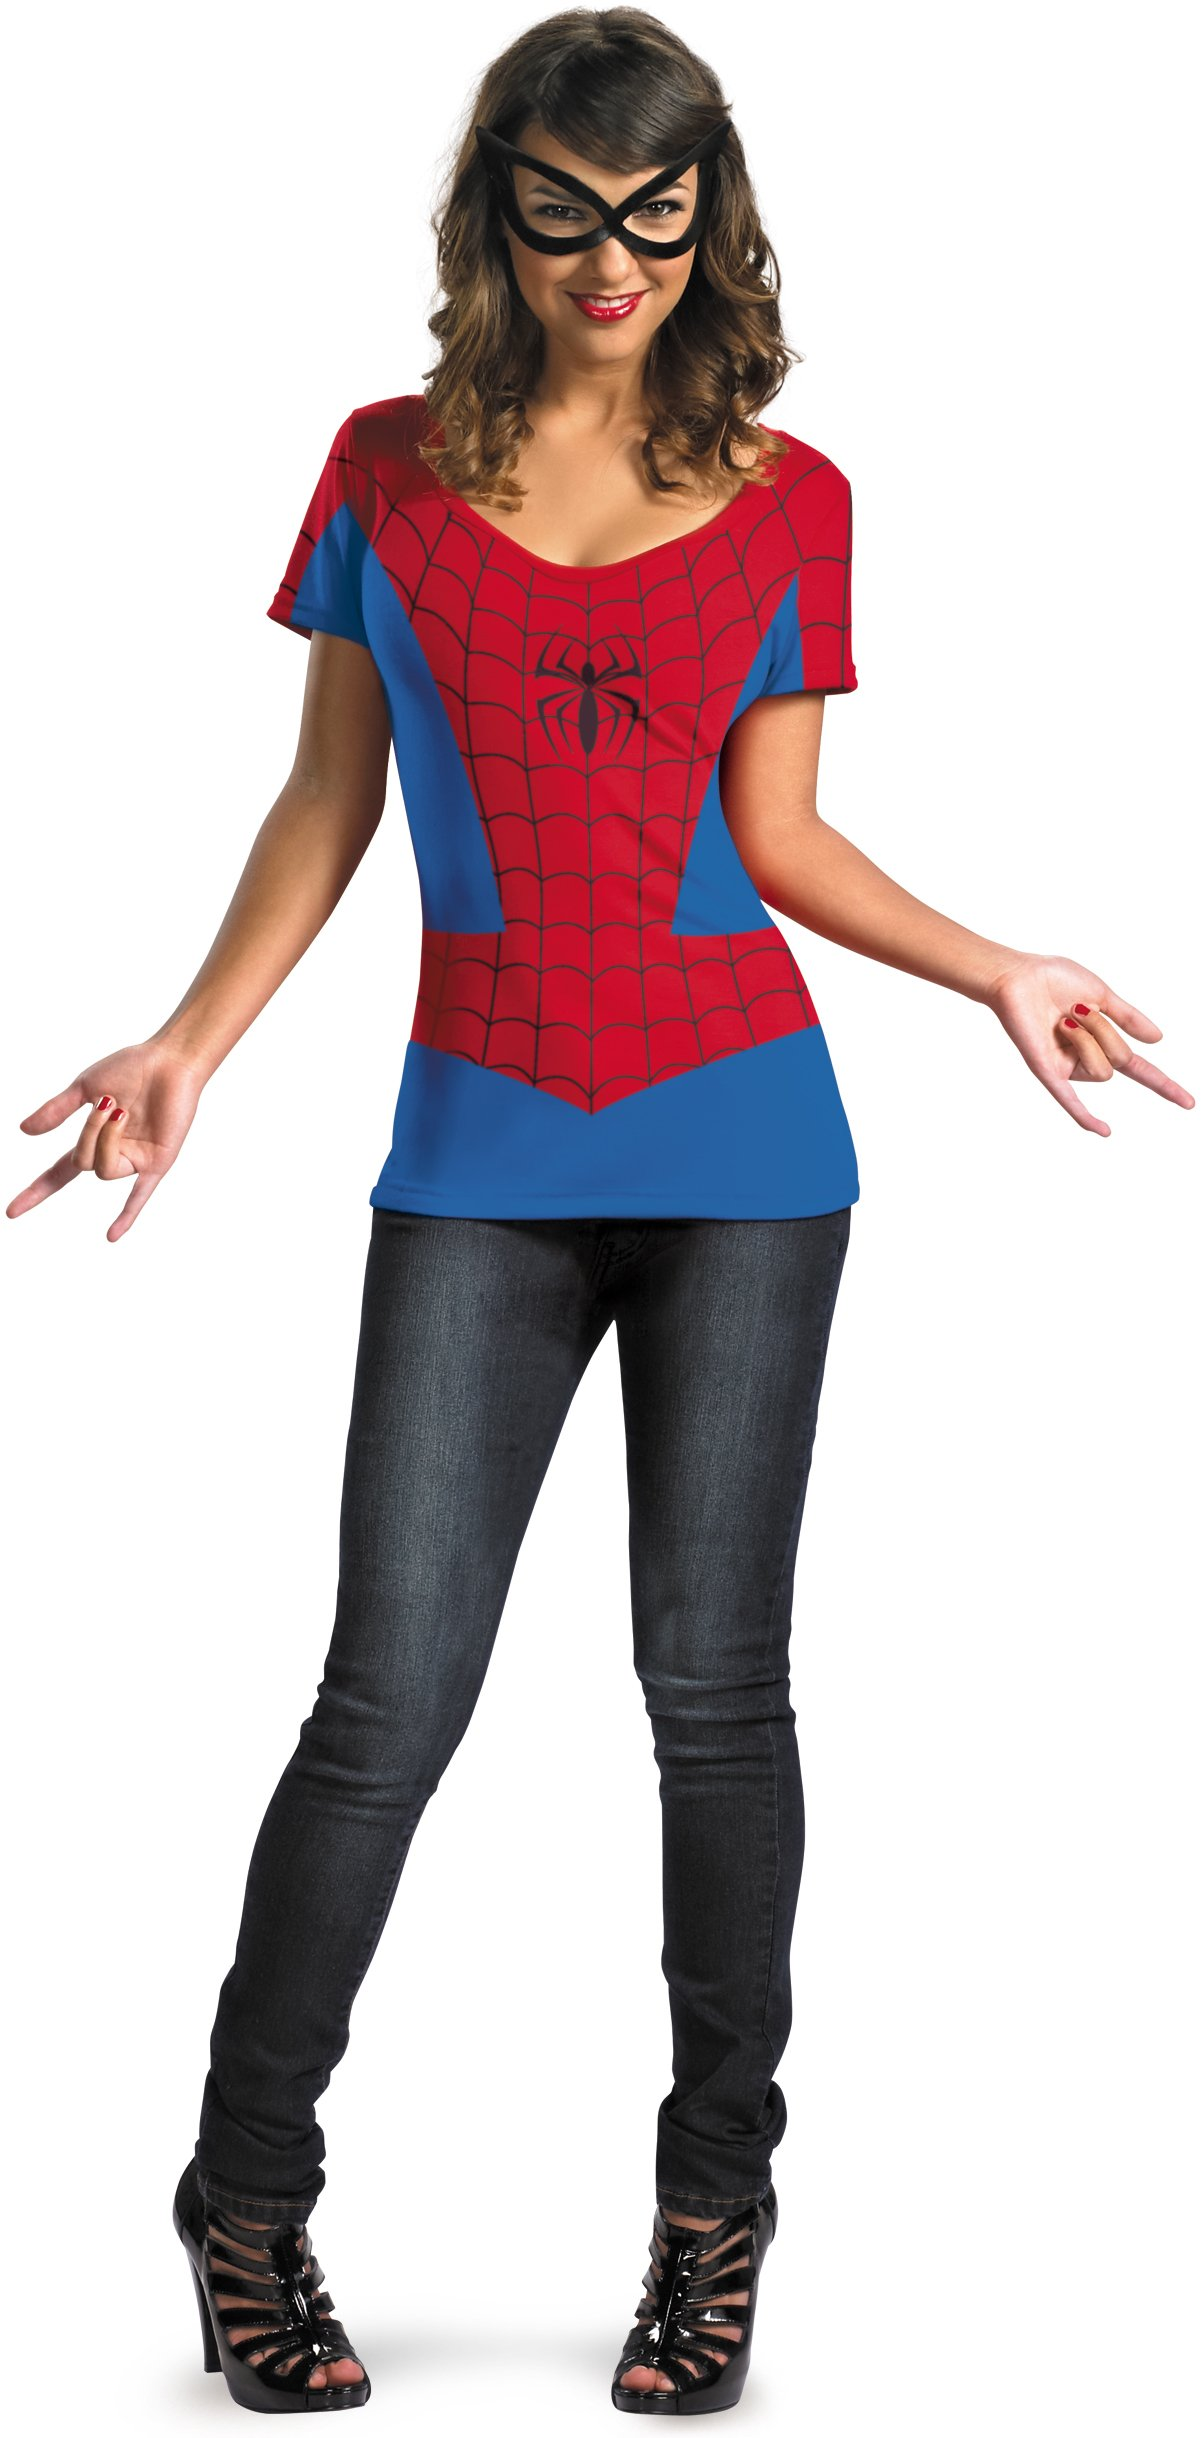 Spider-Girl Adult Costume Kit